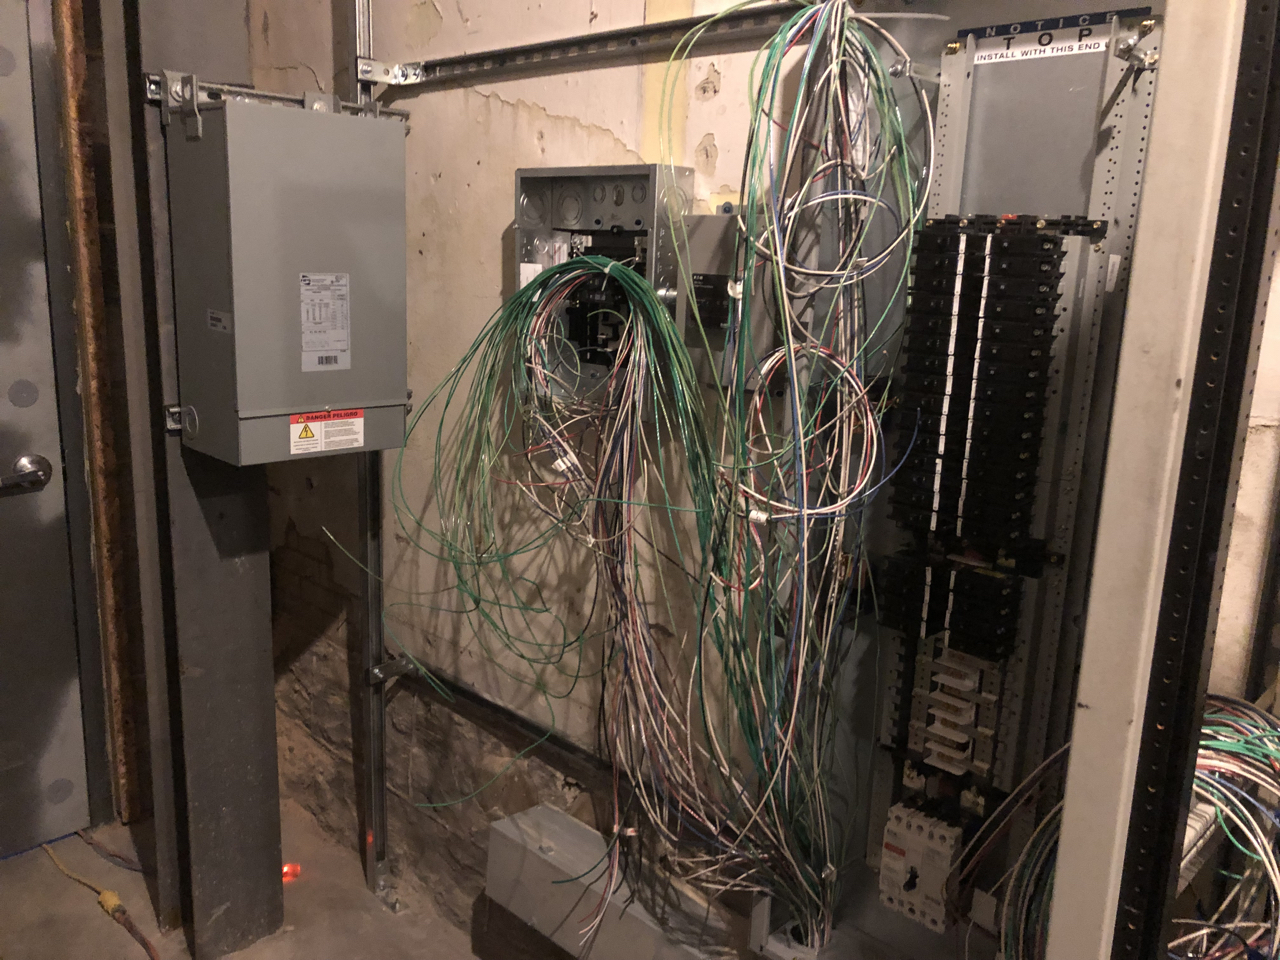 The transformer is hung on the left, in the middle is a disconnect and a surge protector, on the right is the panel for the clean power to the studios.